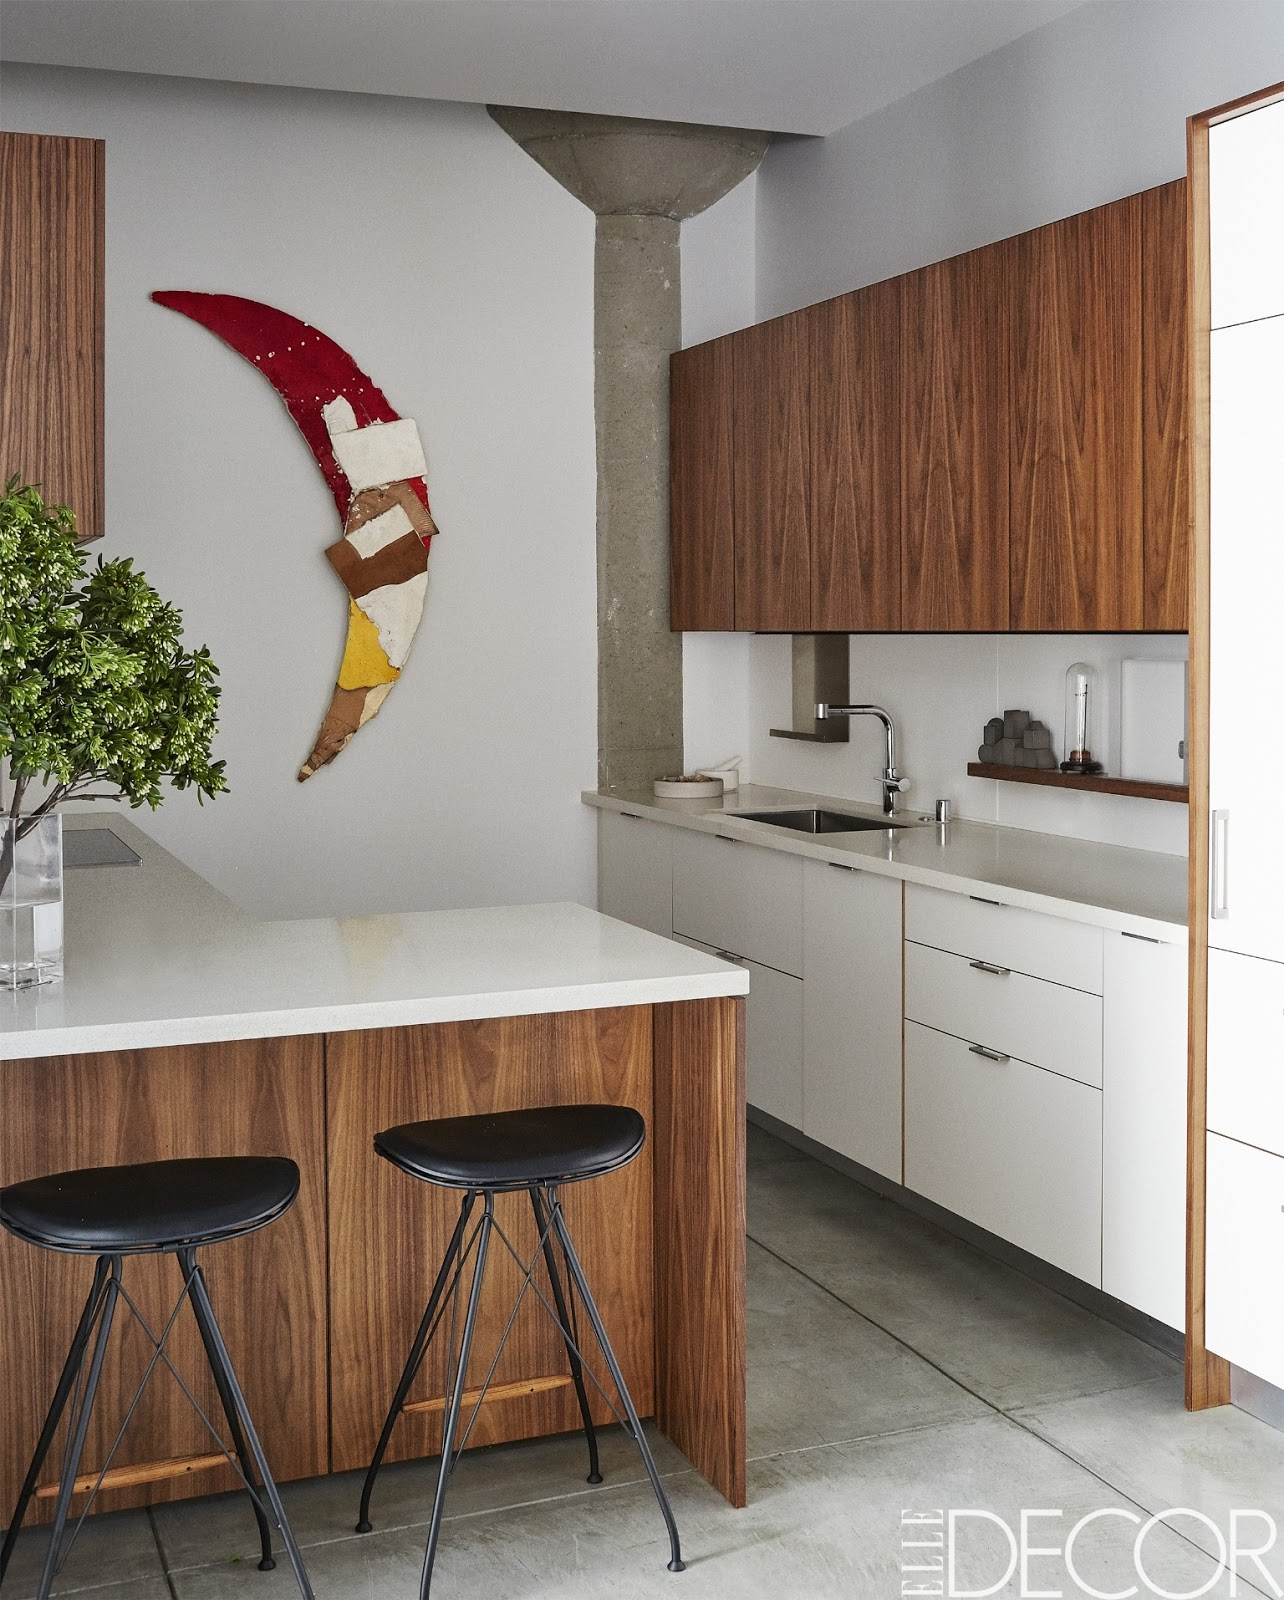 Loveisspeed Tour A Raw Refined San Francisco Home With Art Gallery Sensibilities